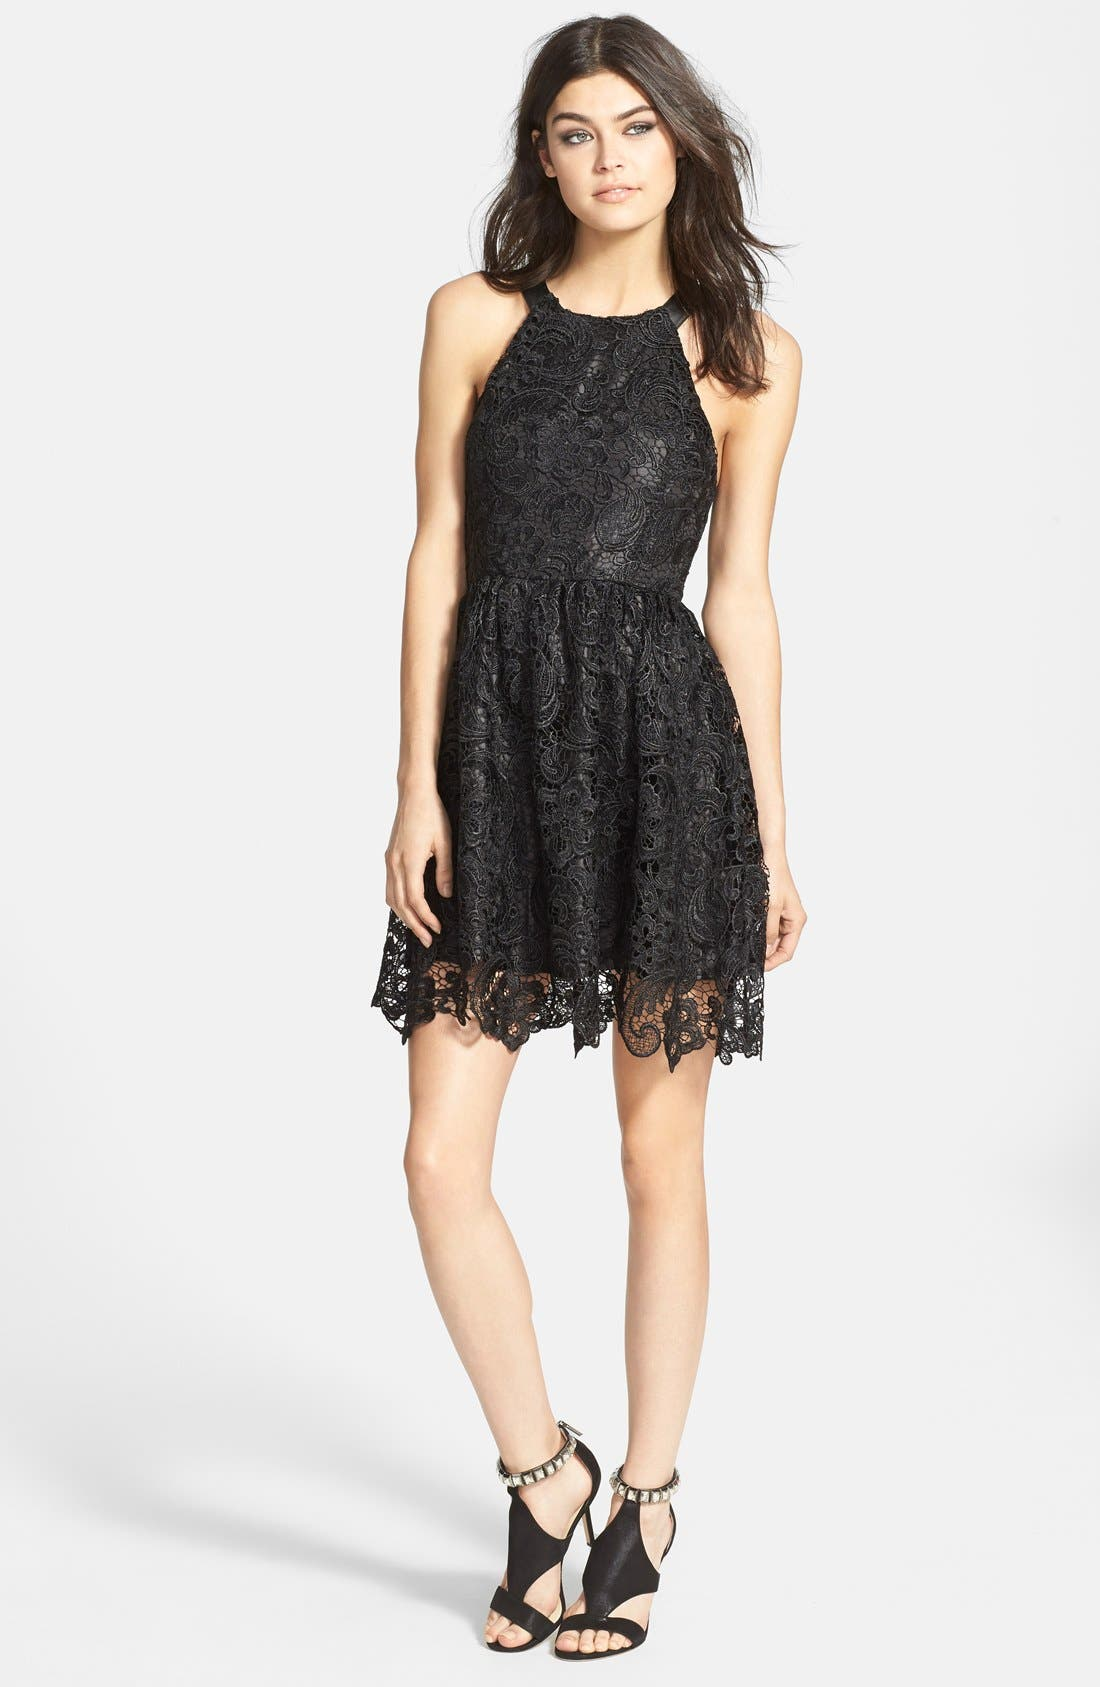 Alternate Image 1 Selected - ASTR Faux Leather Trim Lace Dress